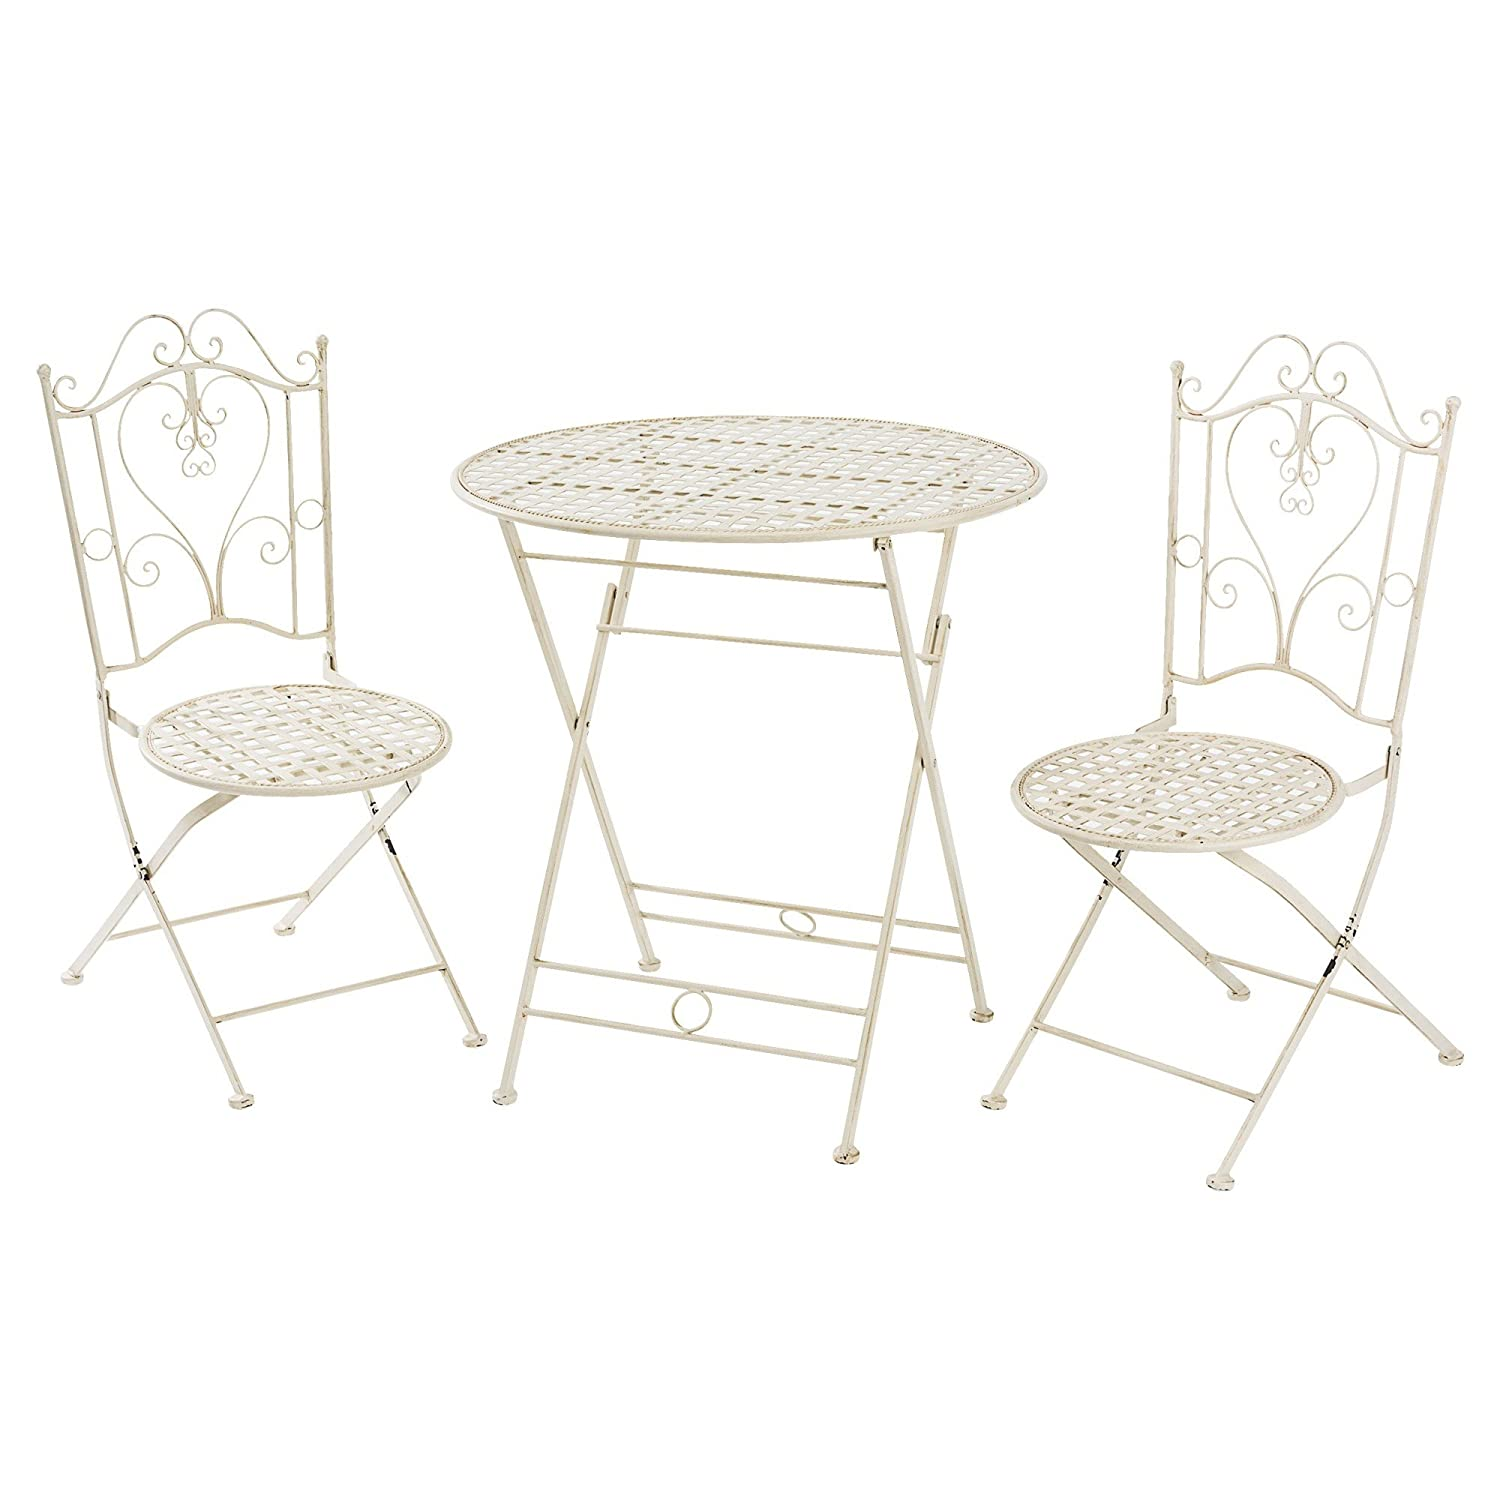 miavilla gartenm bel lana bistro set vintage metall antik wei 3 teilig jetzt kaufen. Black Bedroom Furniture Sets. Home Design Ideas